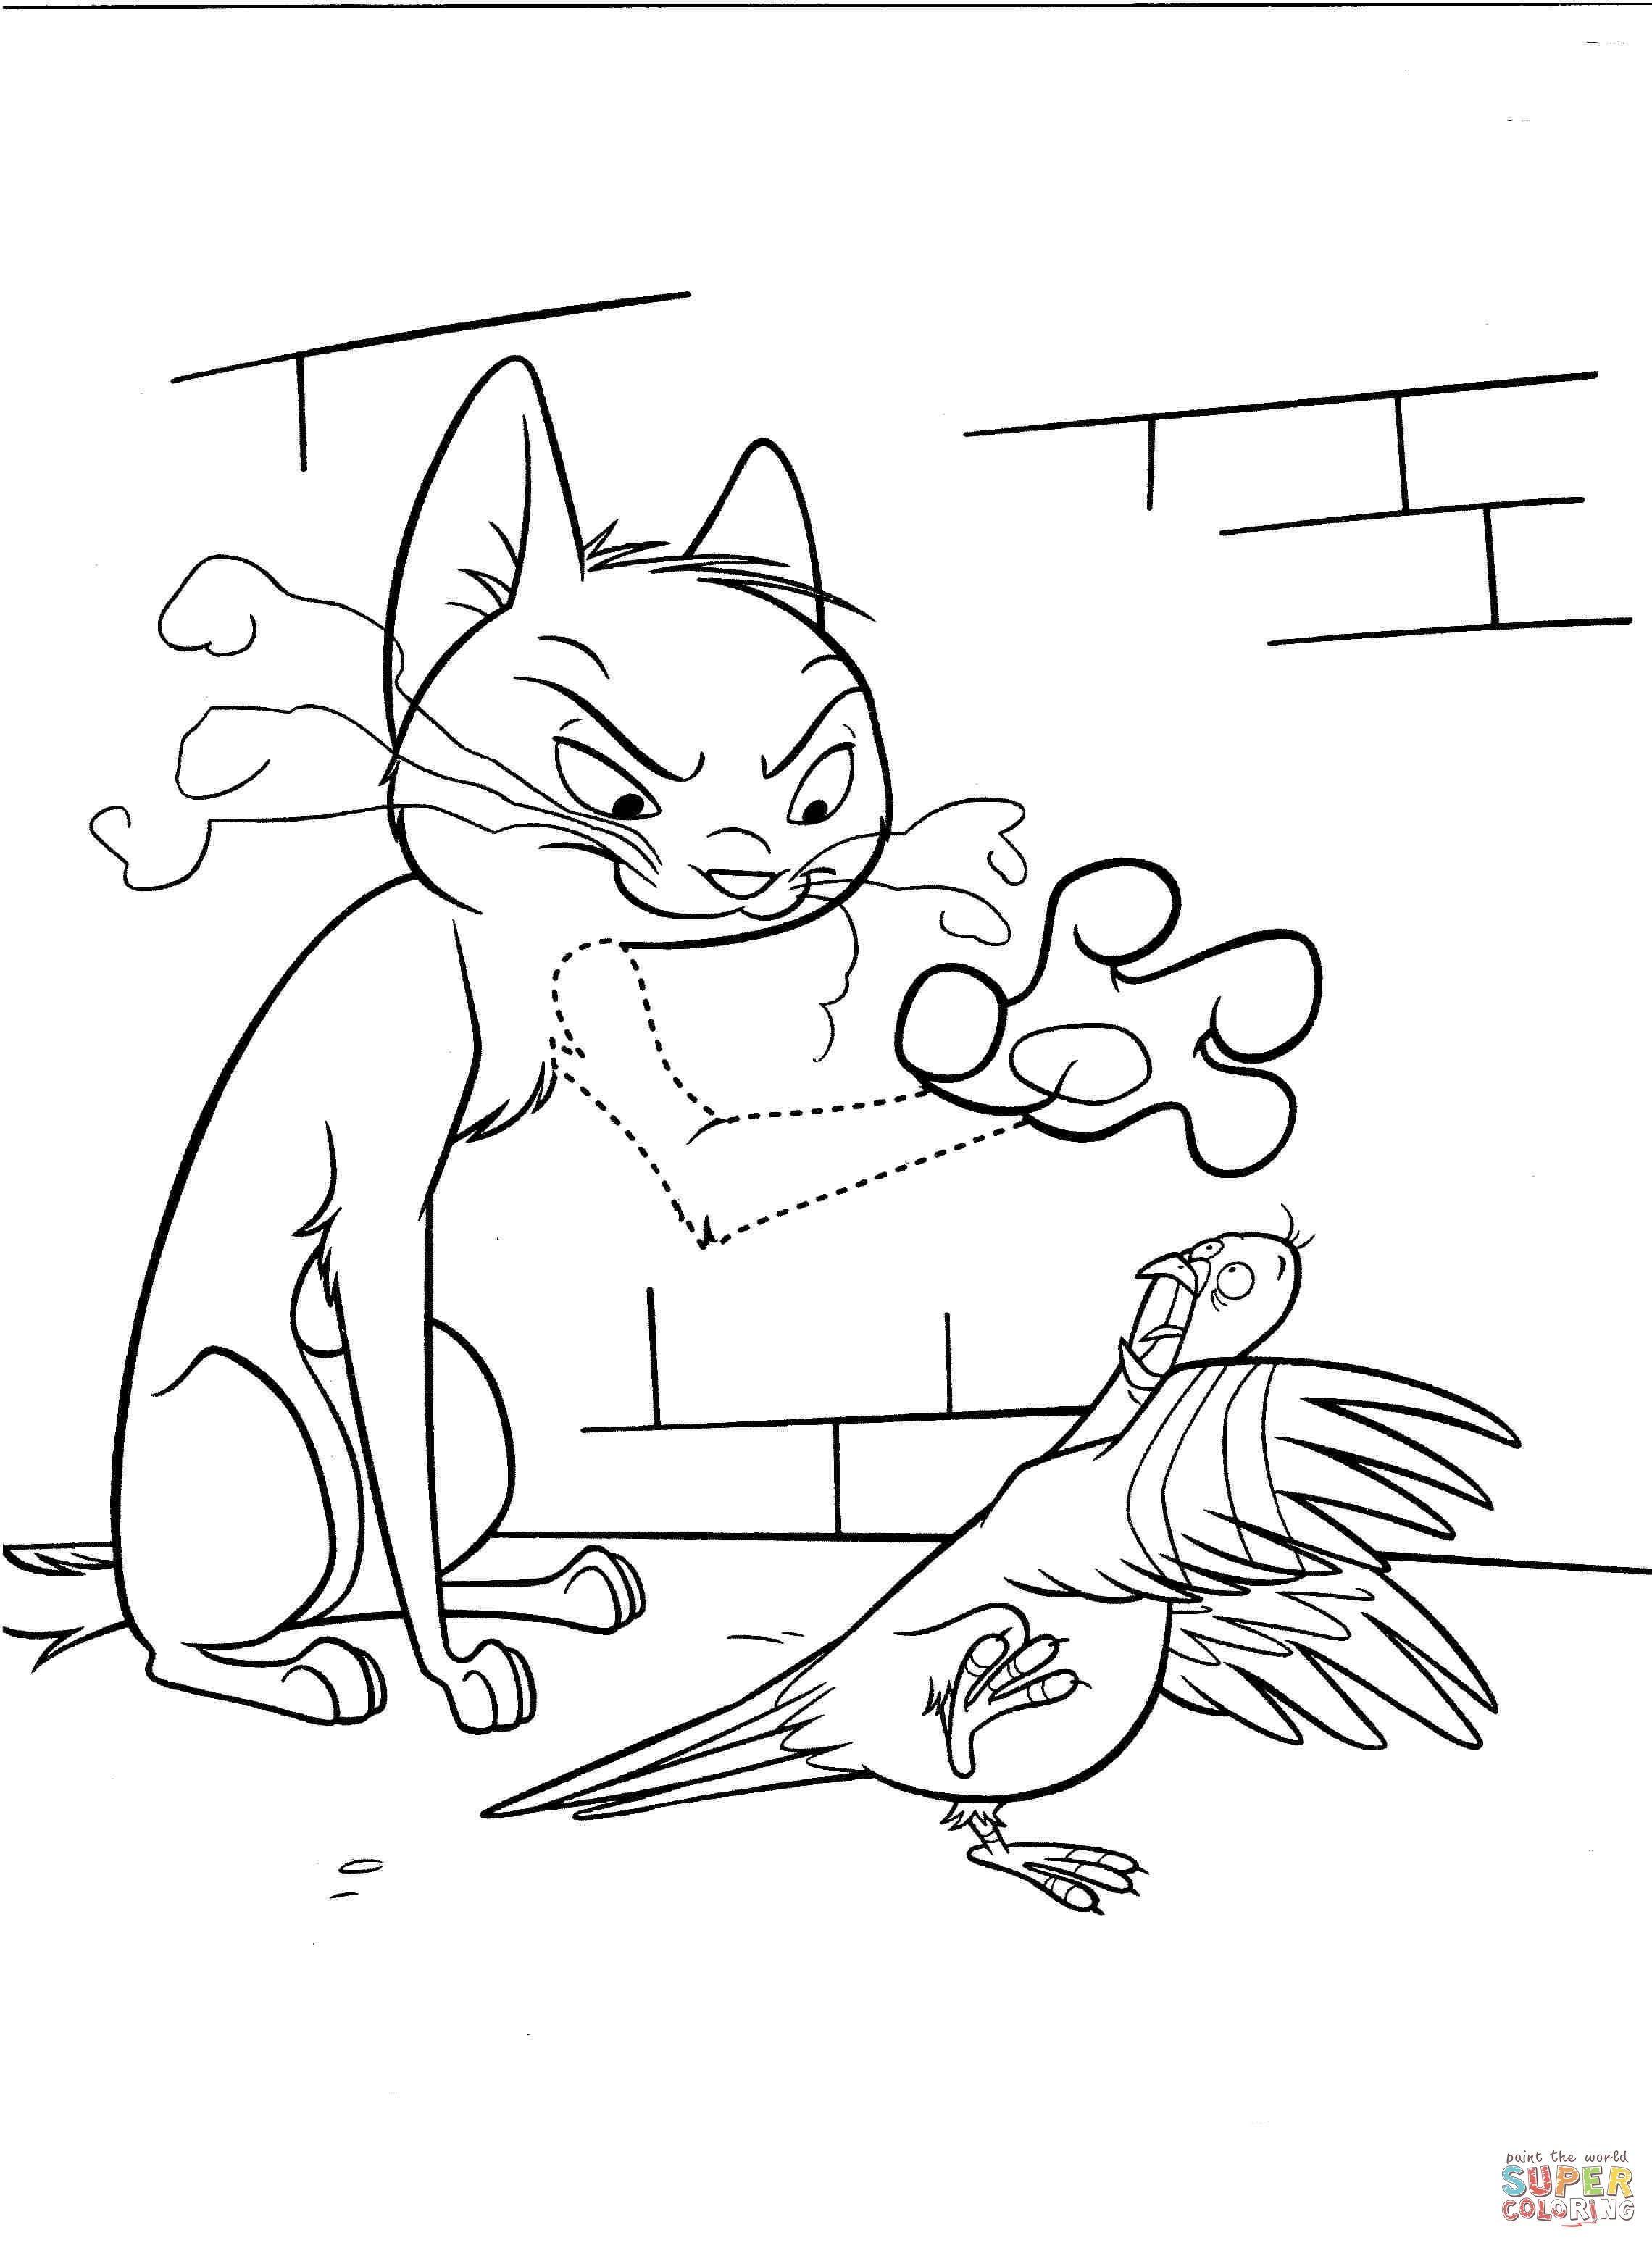 Angry Cat With Dove Coloring Page Supercoloring Com Bird Coloring Pages Disney Coloring Pages Coloring Pages